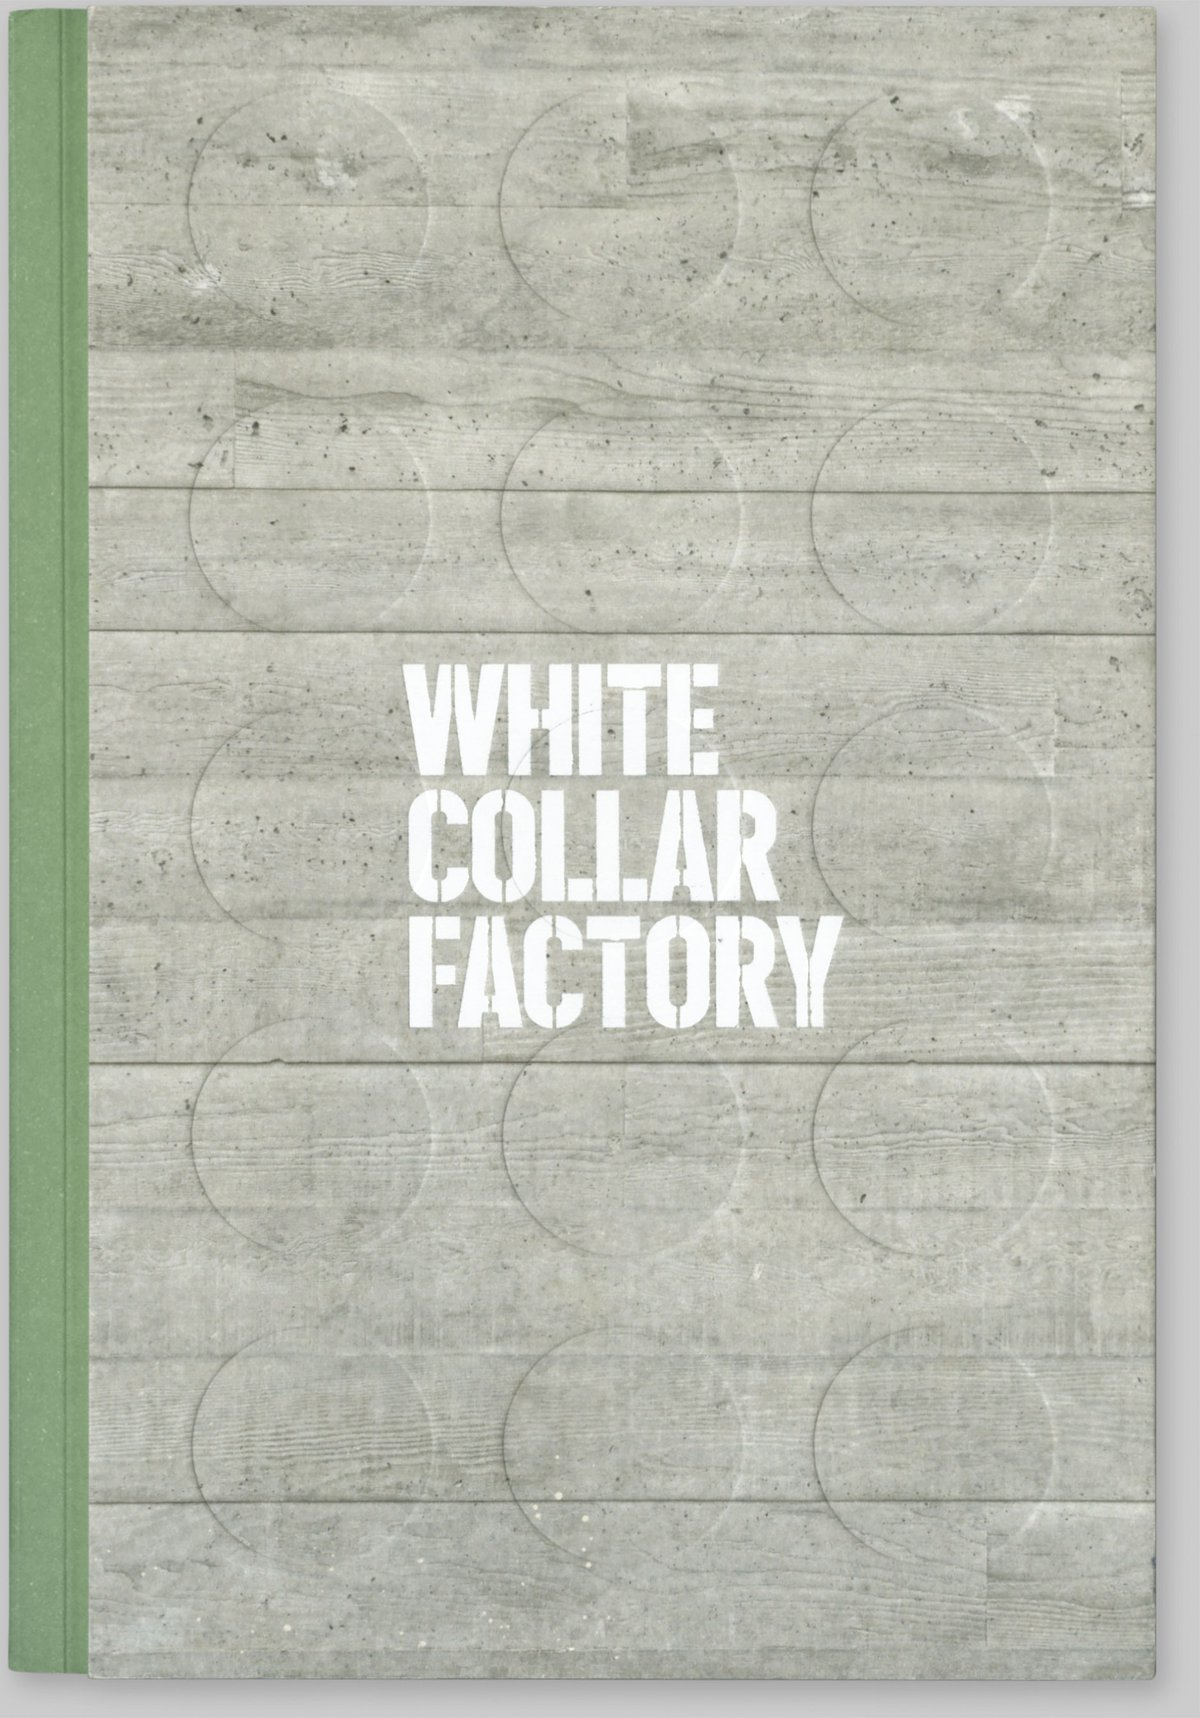 whitecollarfactory_cover-g.jpg